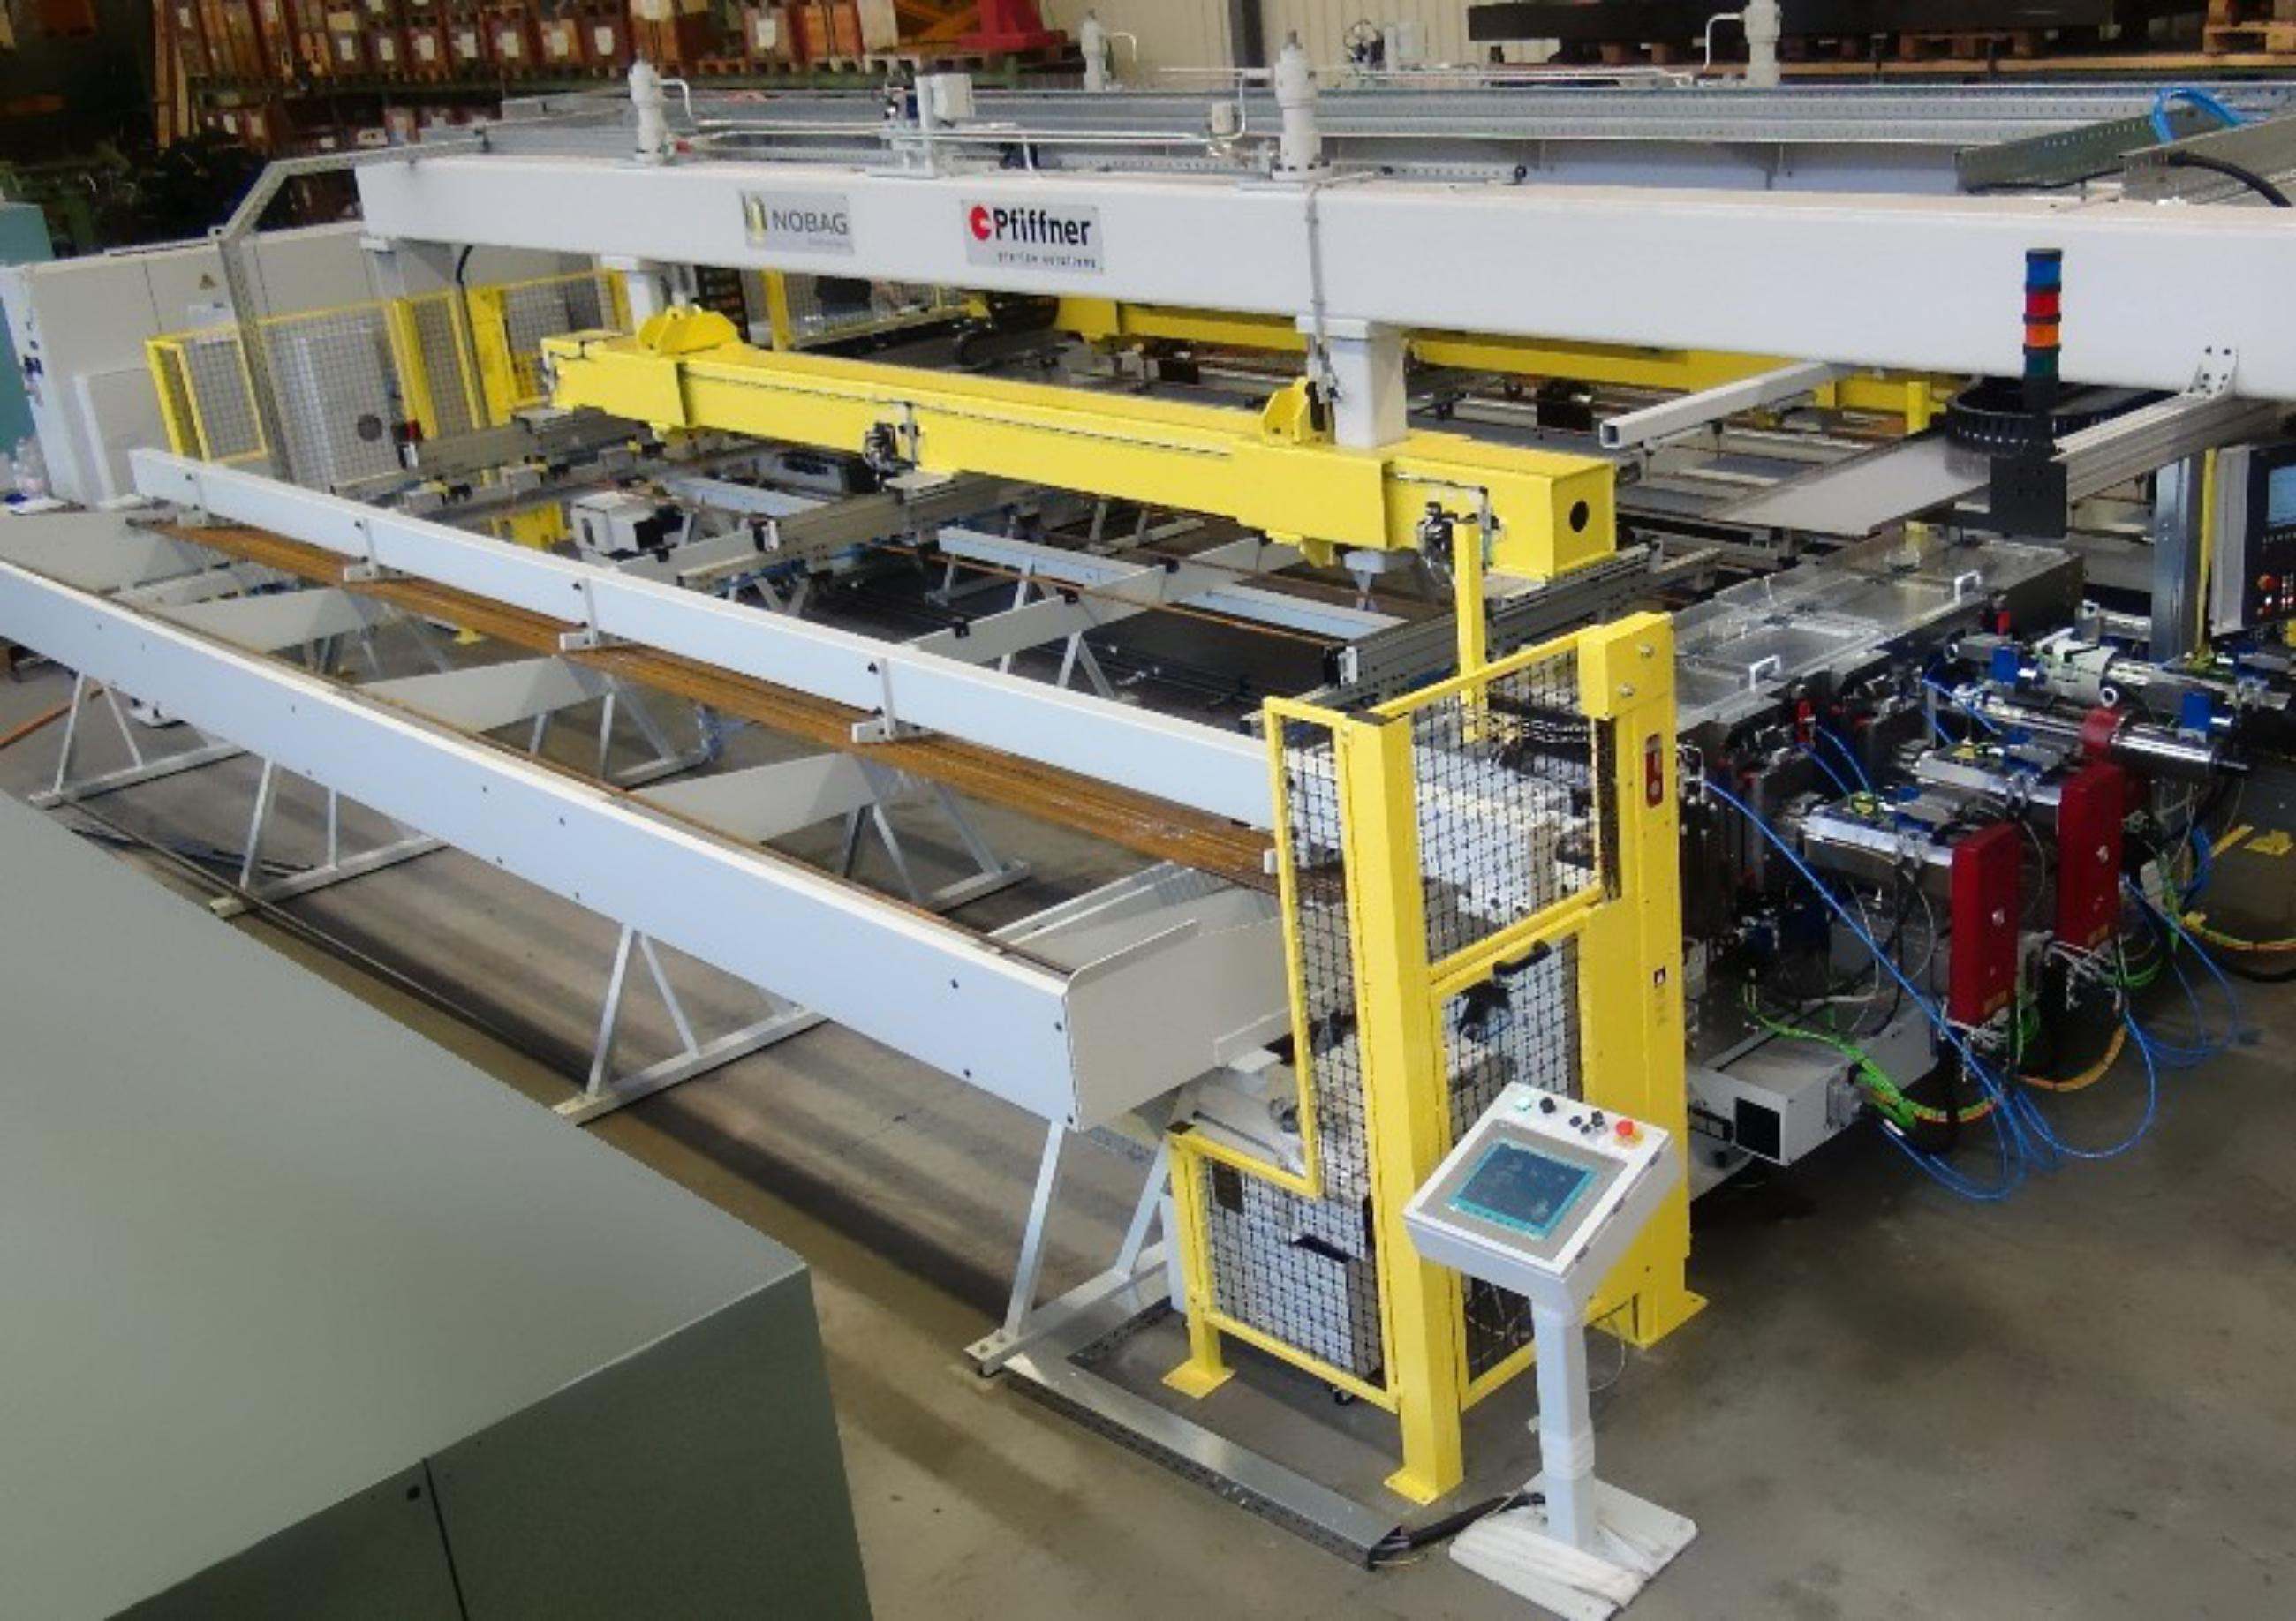 Nobag, special purpose machine, ingoing section